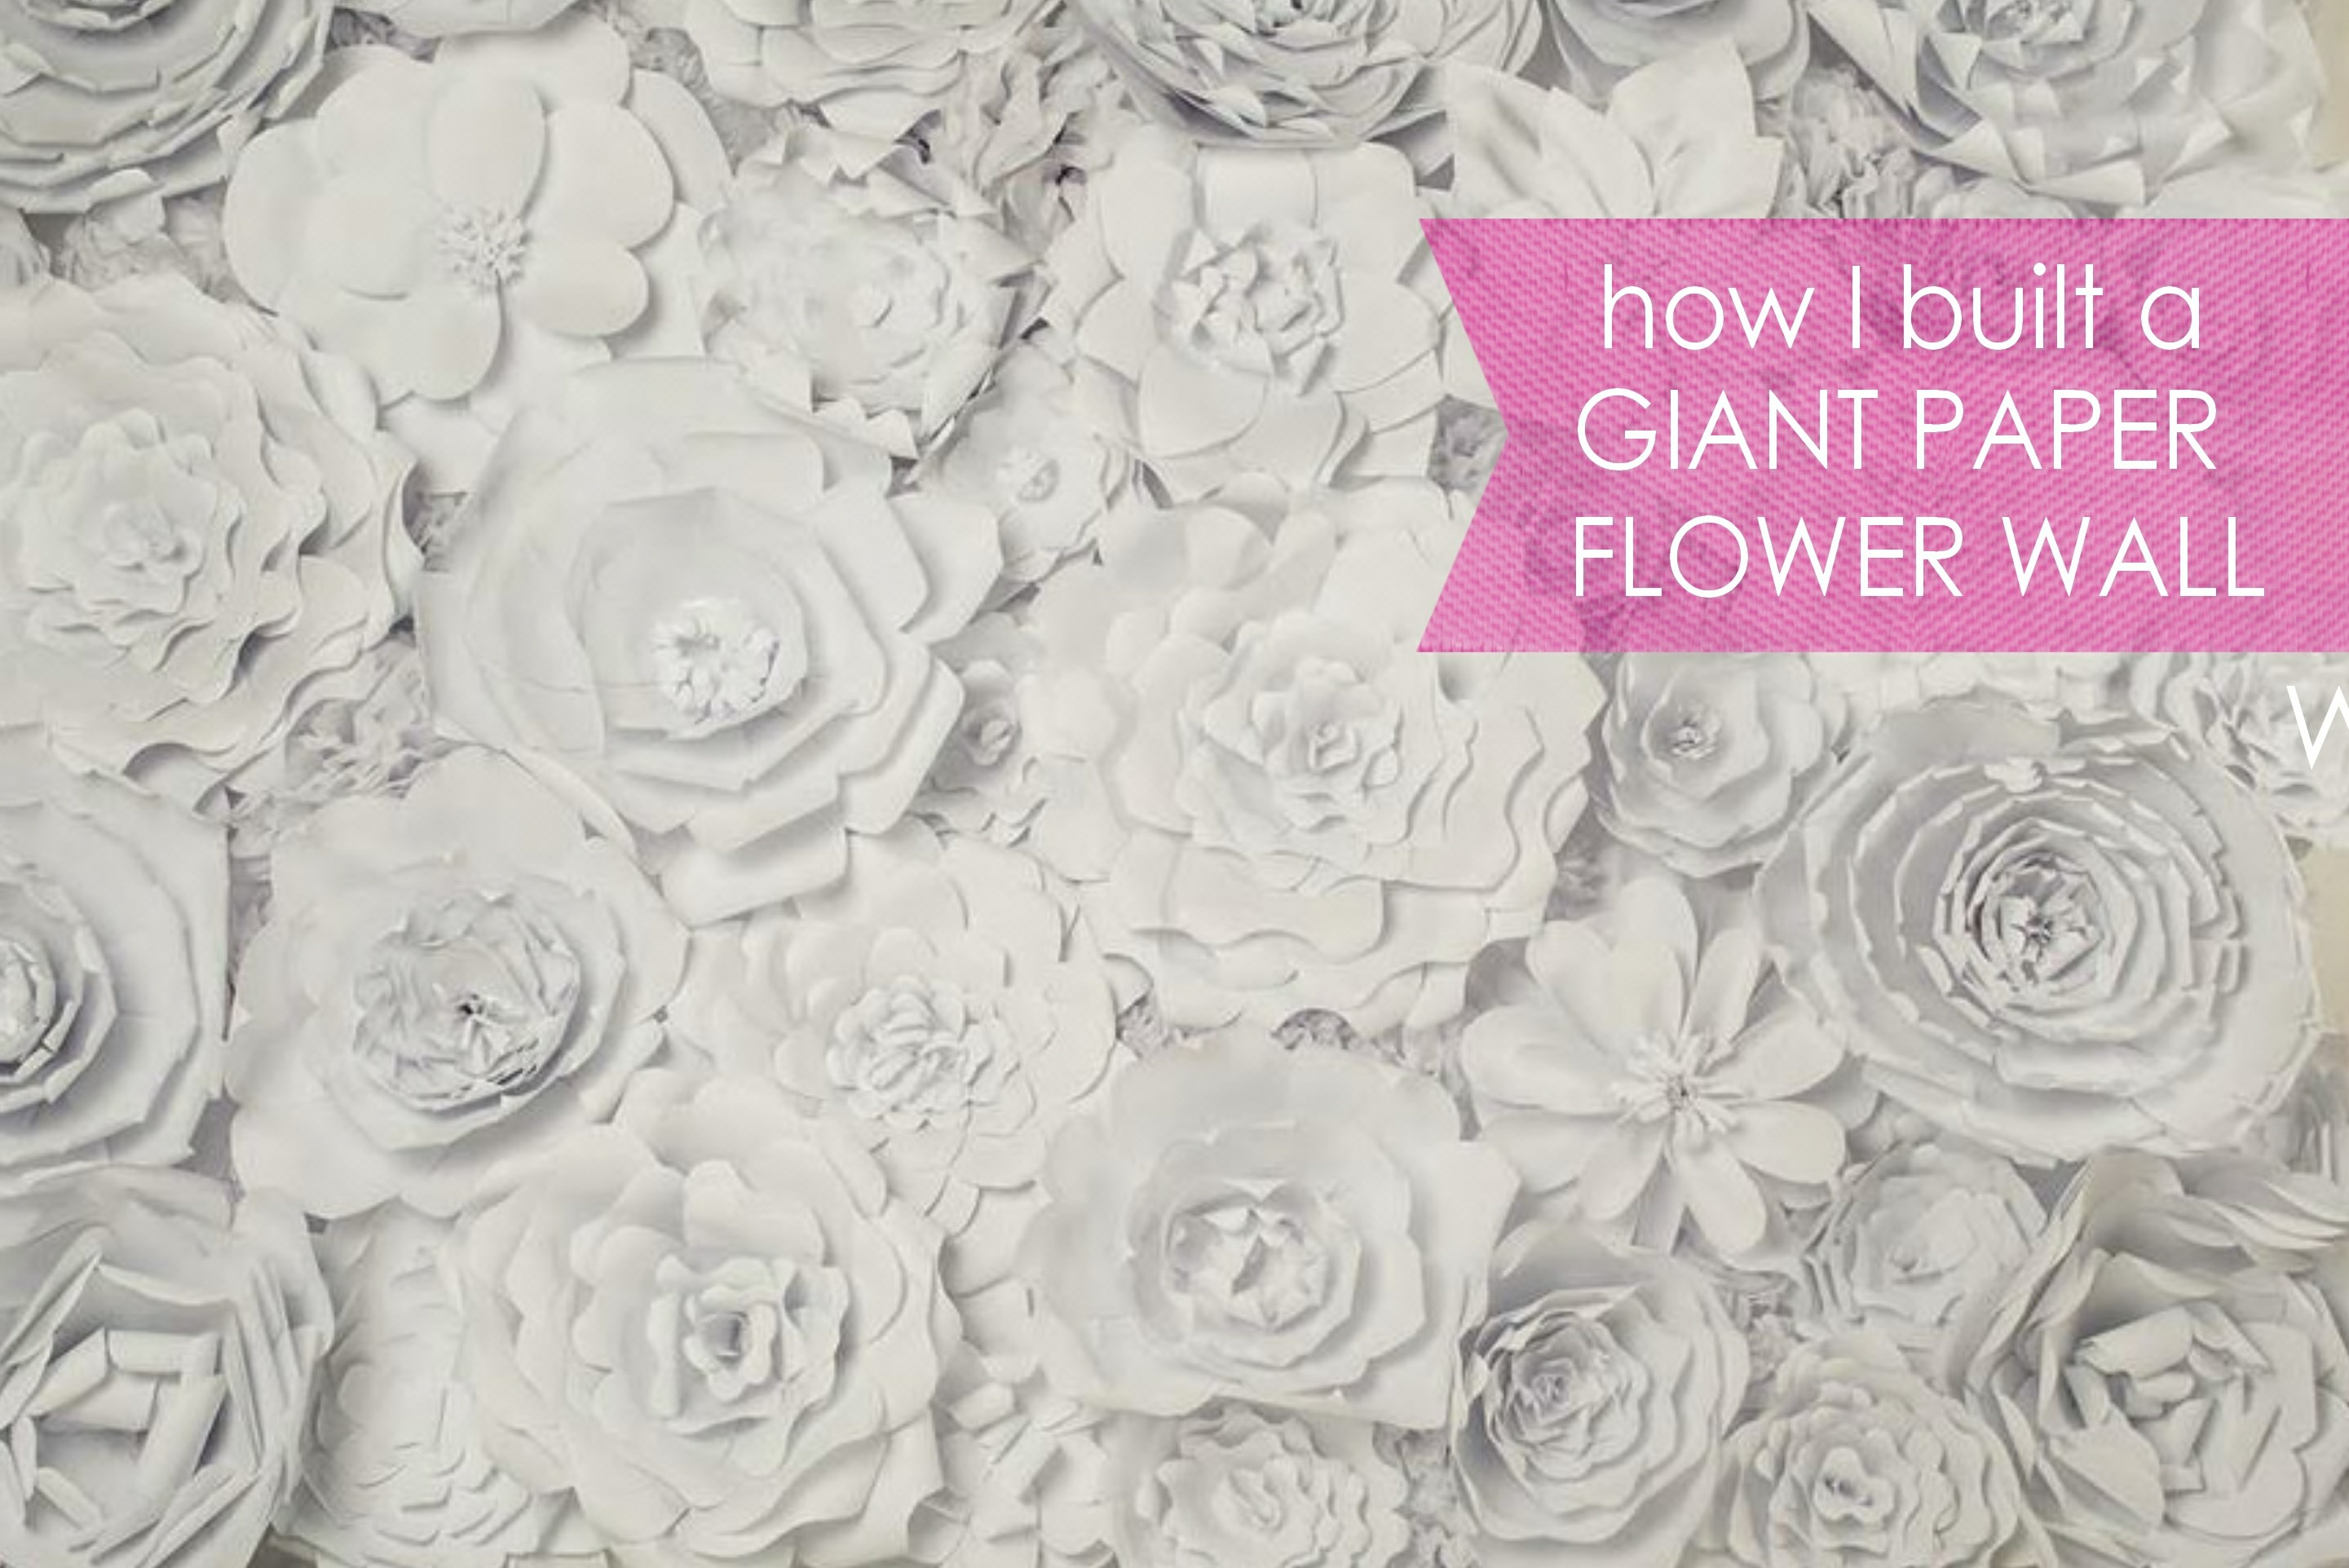 Modish Large Chanel Paper Flower Wall Inspired Wedding Backdrop How